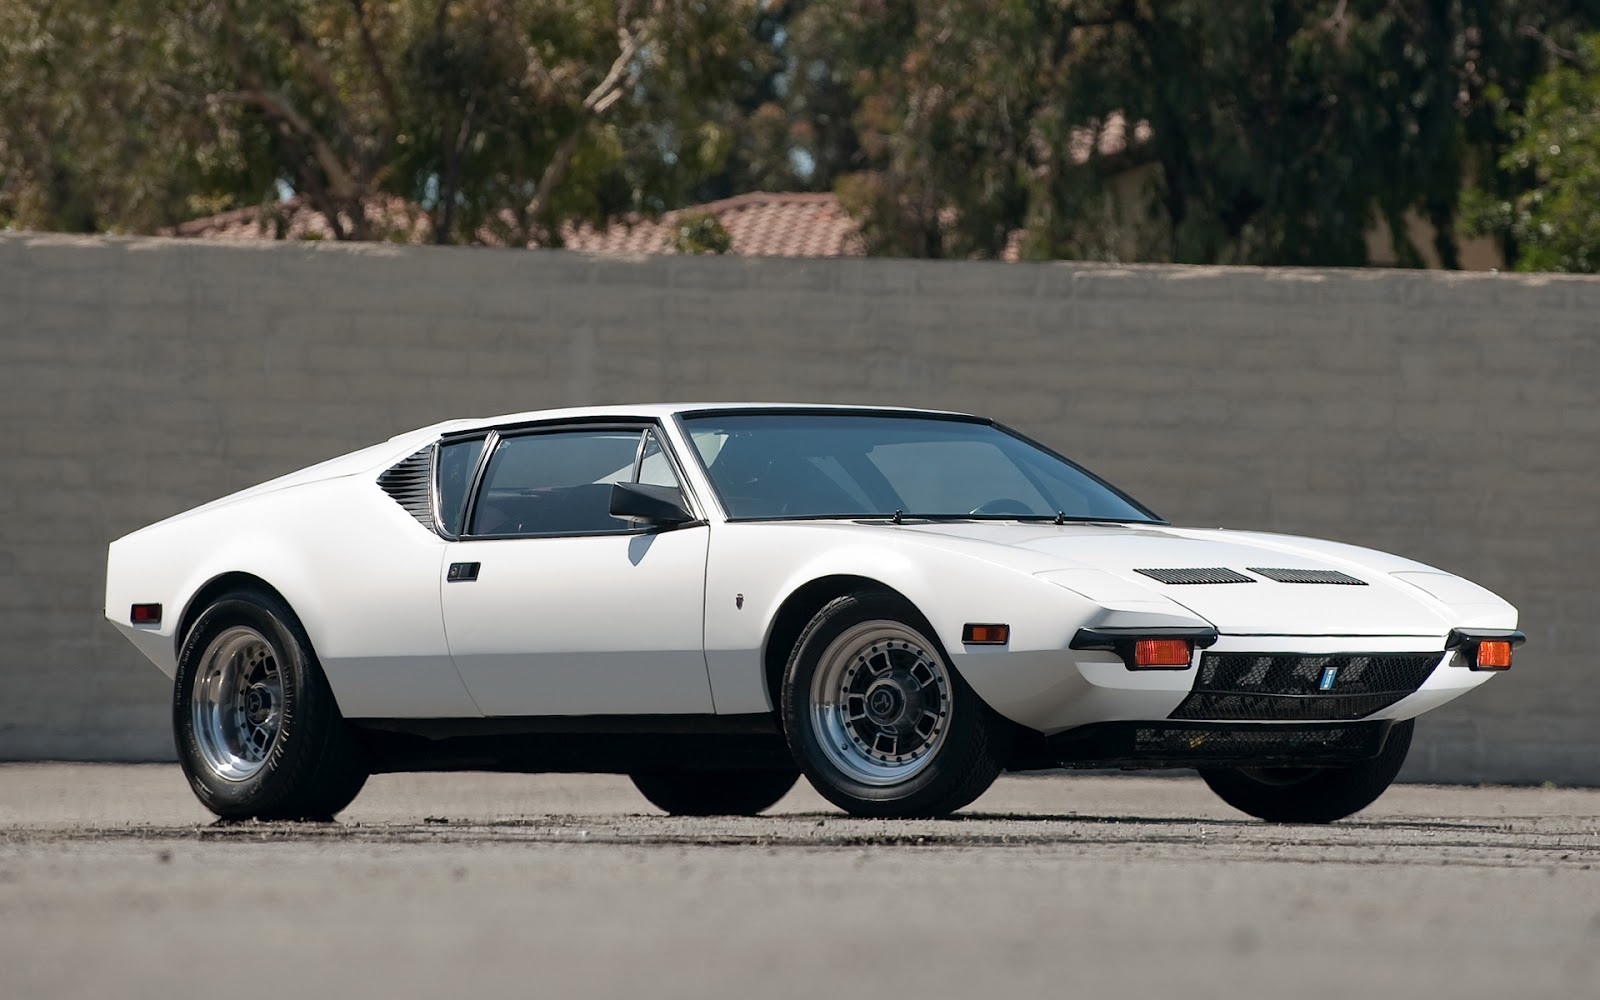 Wallpapers Of Beautiful Cars De Tomaso Pantera